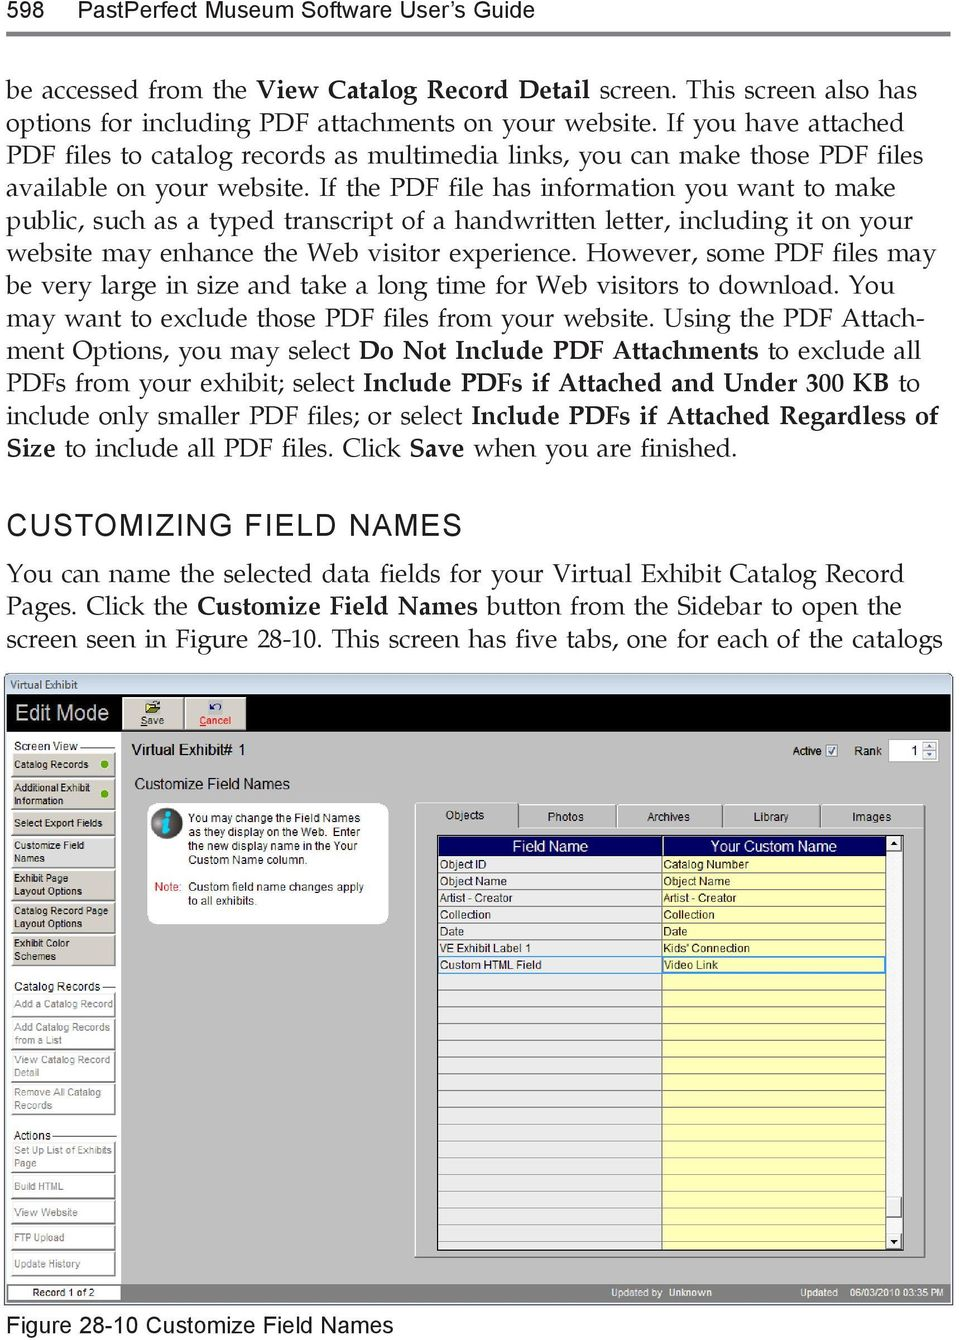 If the PDF file has information you want to make public, such as a typed transcript of a handwritten letter, including it on your website may enhance the Web visitor experience.